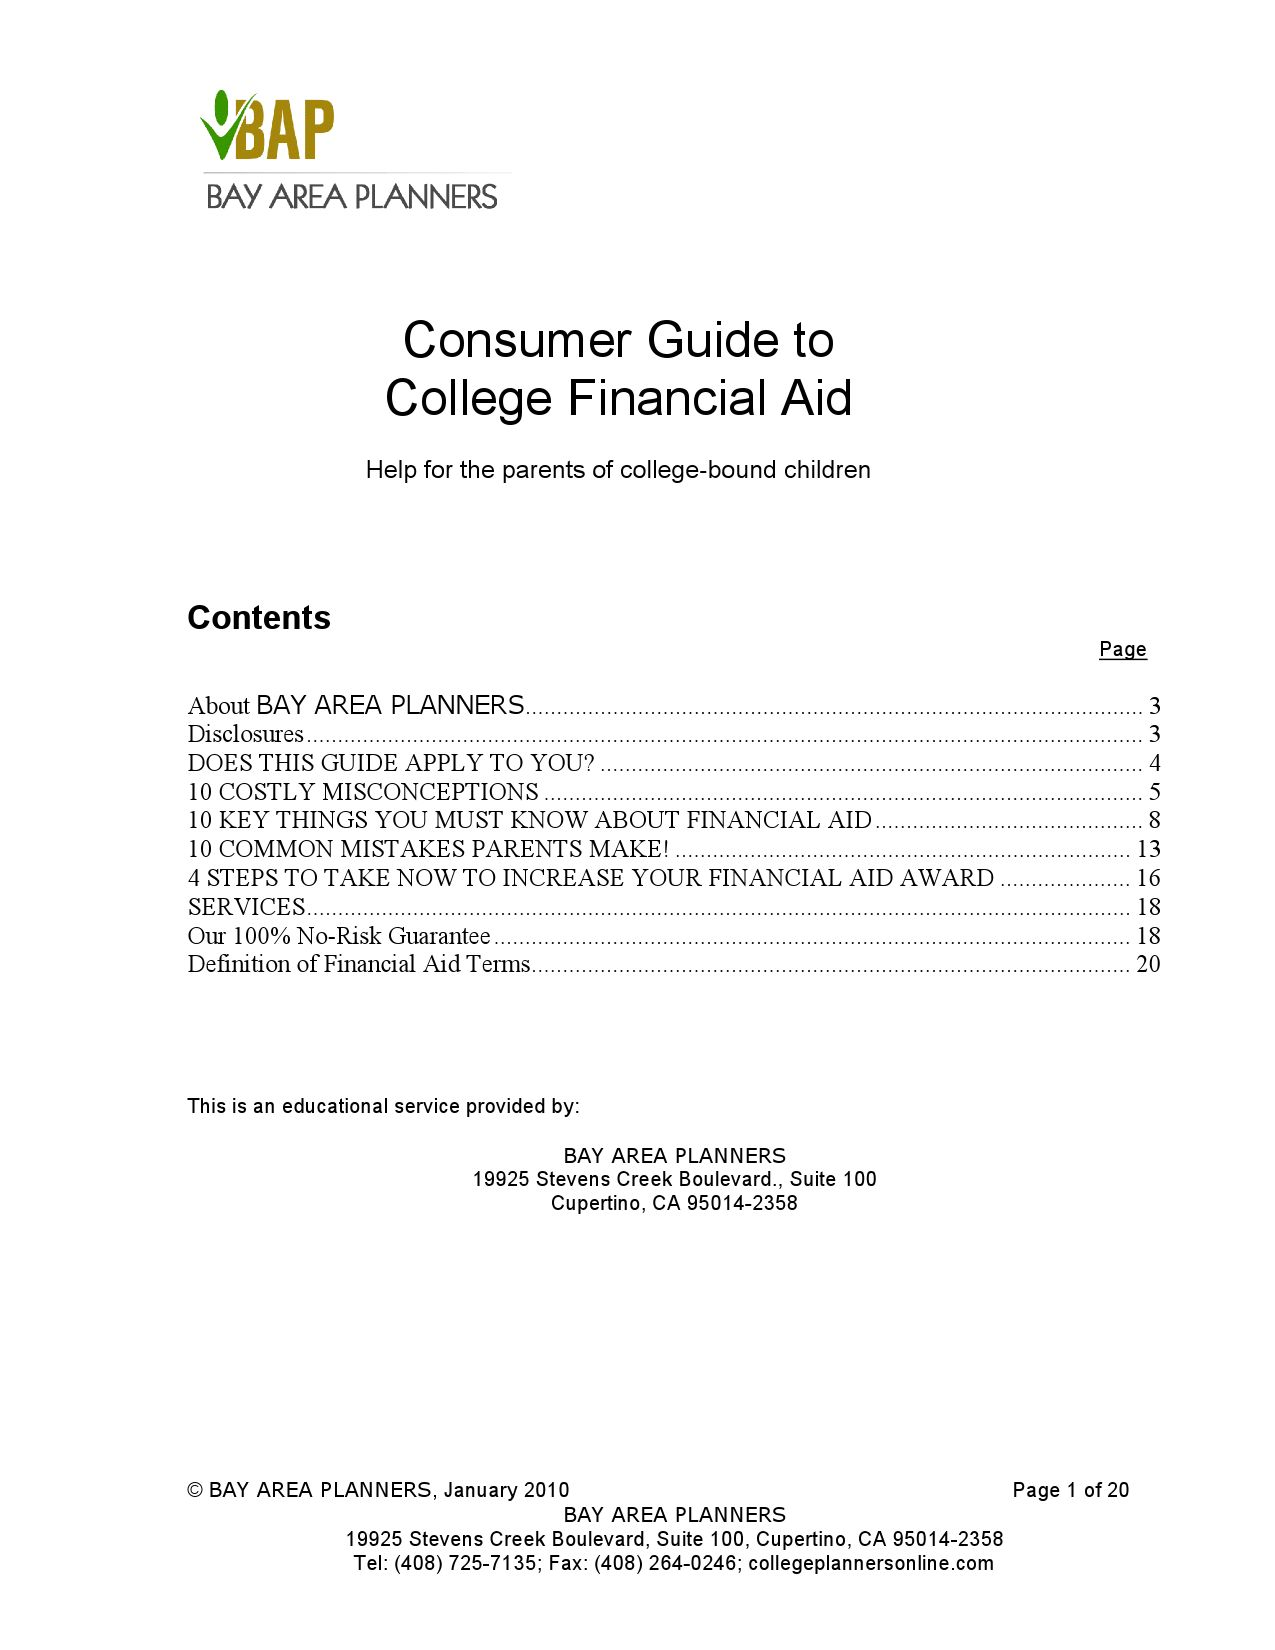 consumer guide to college financial aid by david beck - issuu